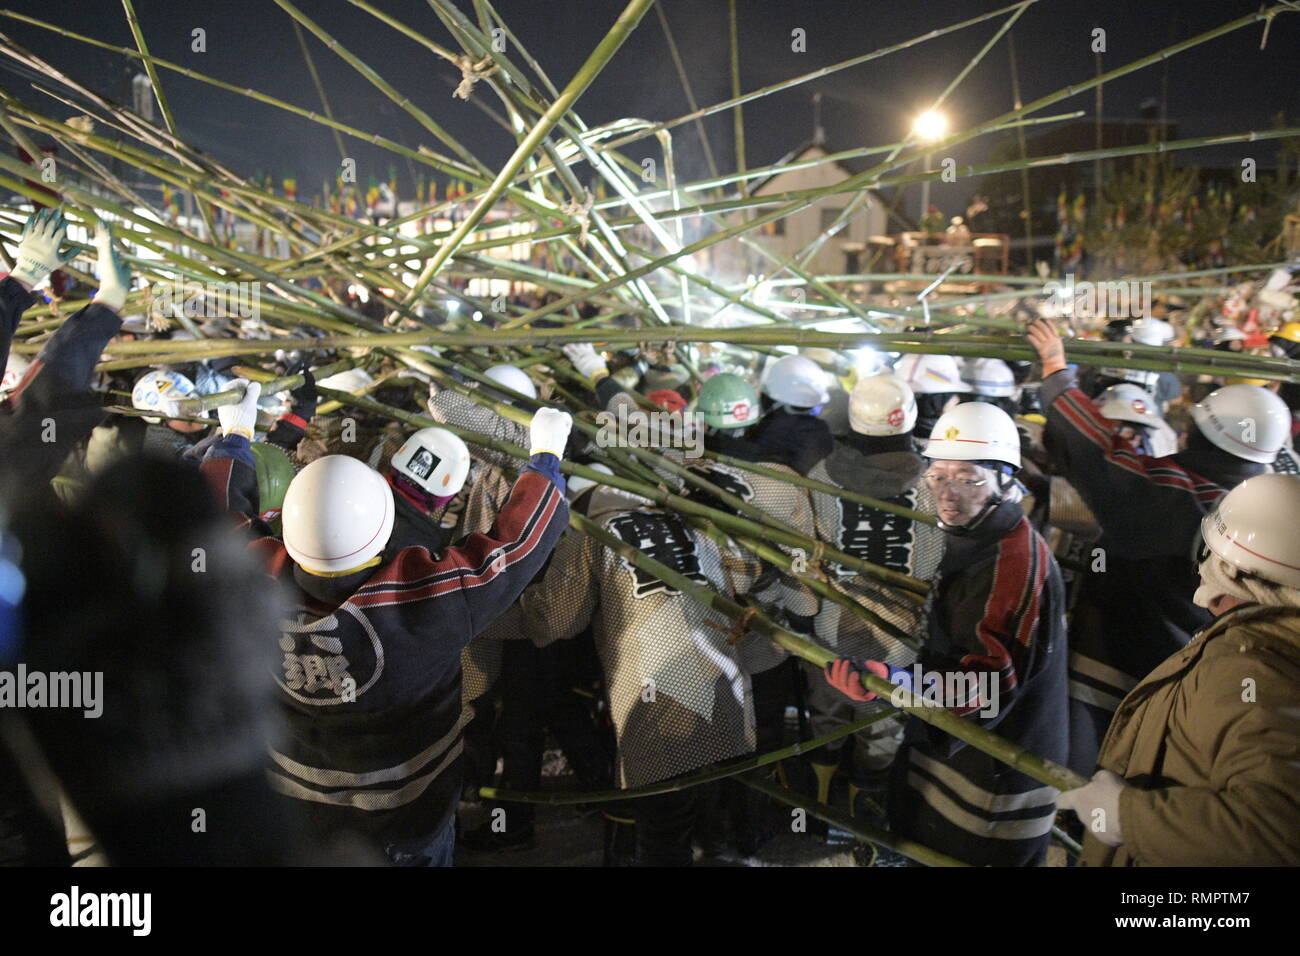 MISATO, AKITA, JAPAN - FEBRUARY 15: In this photo shows Akita men wield bamboo poles and beat each other up for a sacred festival in order to divine the coming harvest during the Rokugo no Takeuchi or Bamboo Fight Festival of Rokugo at Misato town, Semboku District, Akita Prefecture, Japan on Feb. 15, 2019. The festival takes place annually to hope for a good harvests and bring success, good Health and also for family safety. (Photo by Richard Atrero de Guzman/Aflo) Credit: Aflo Co. Ltd./Alamy Live News - Stock Image